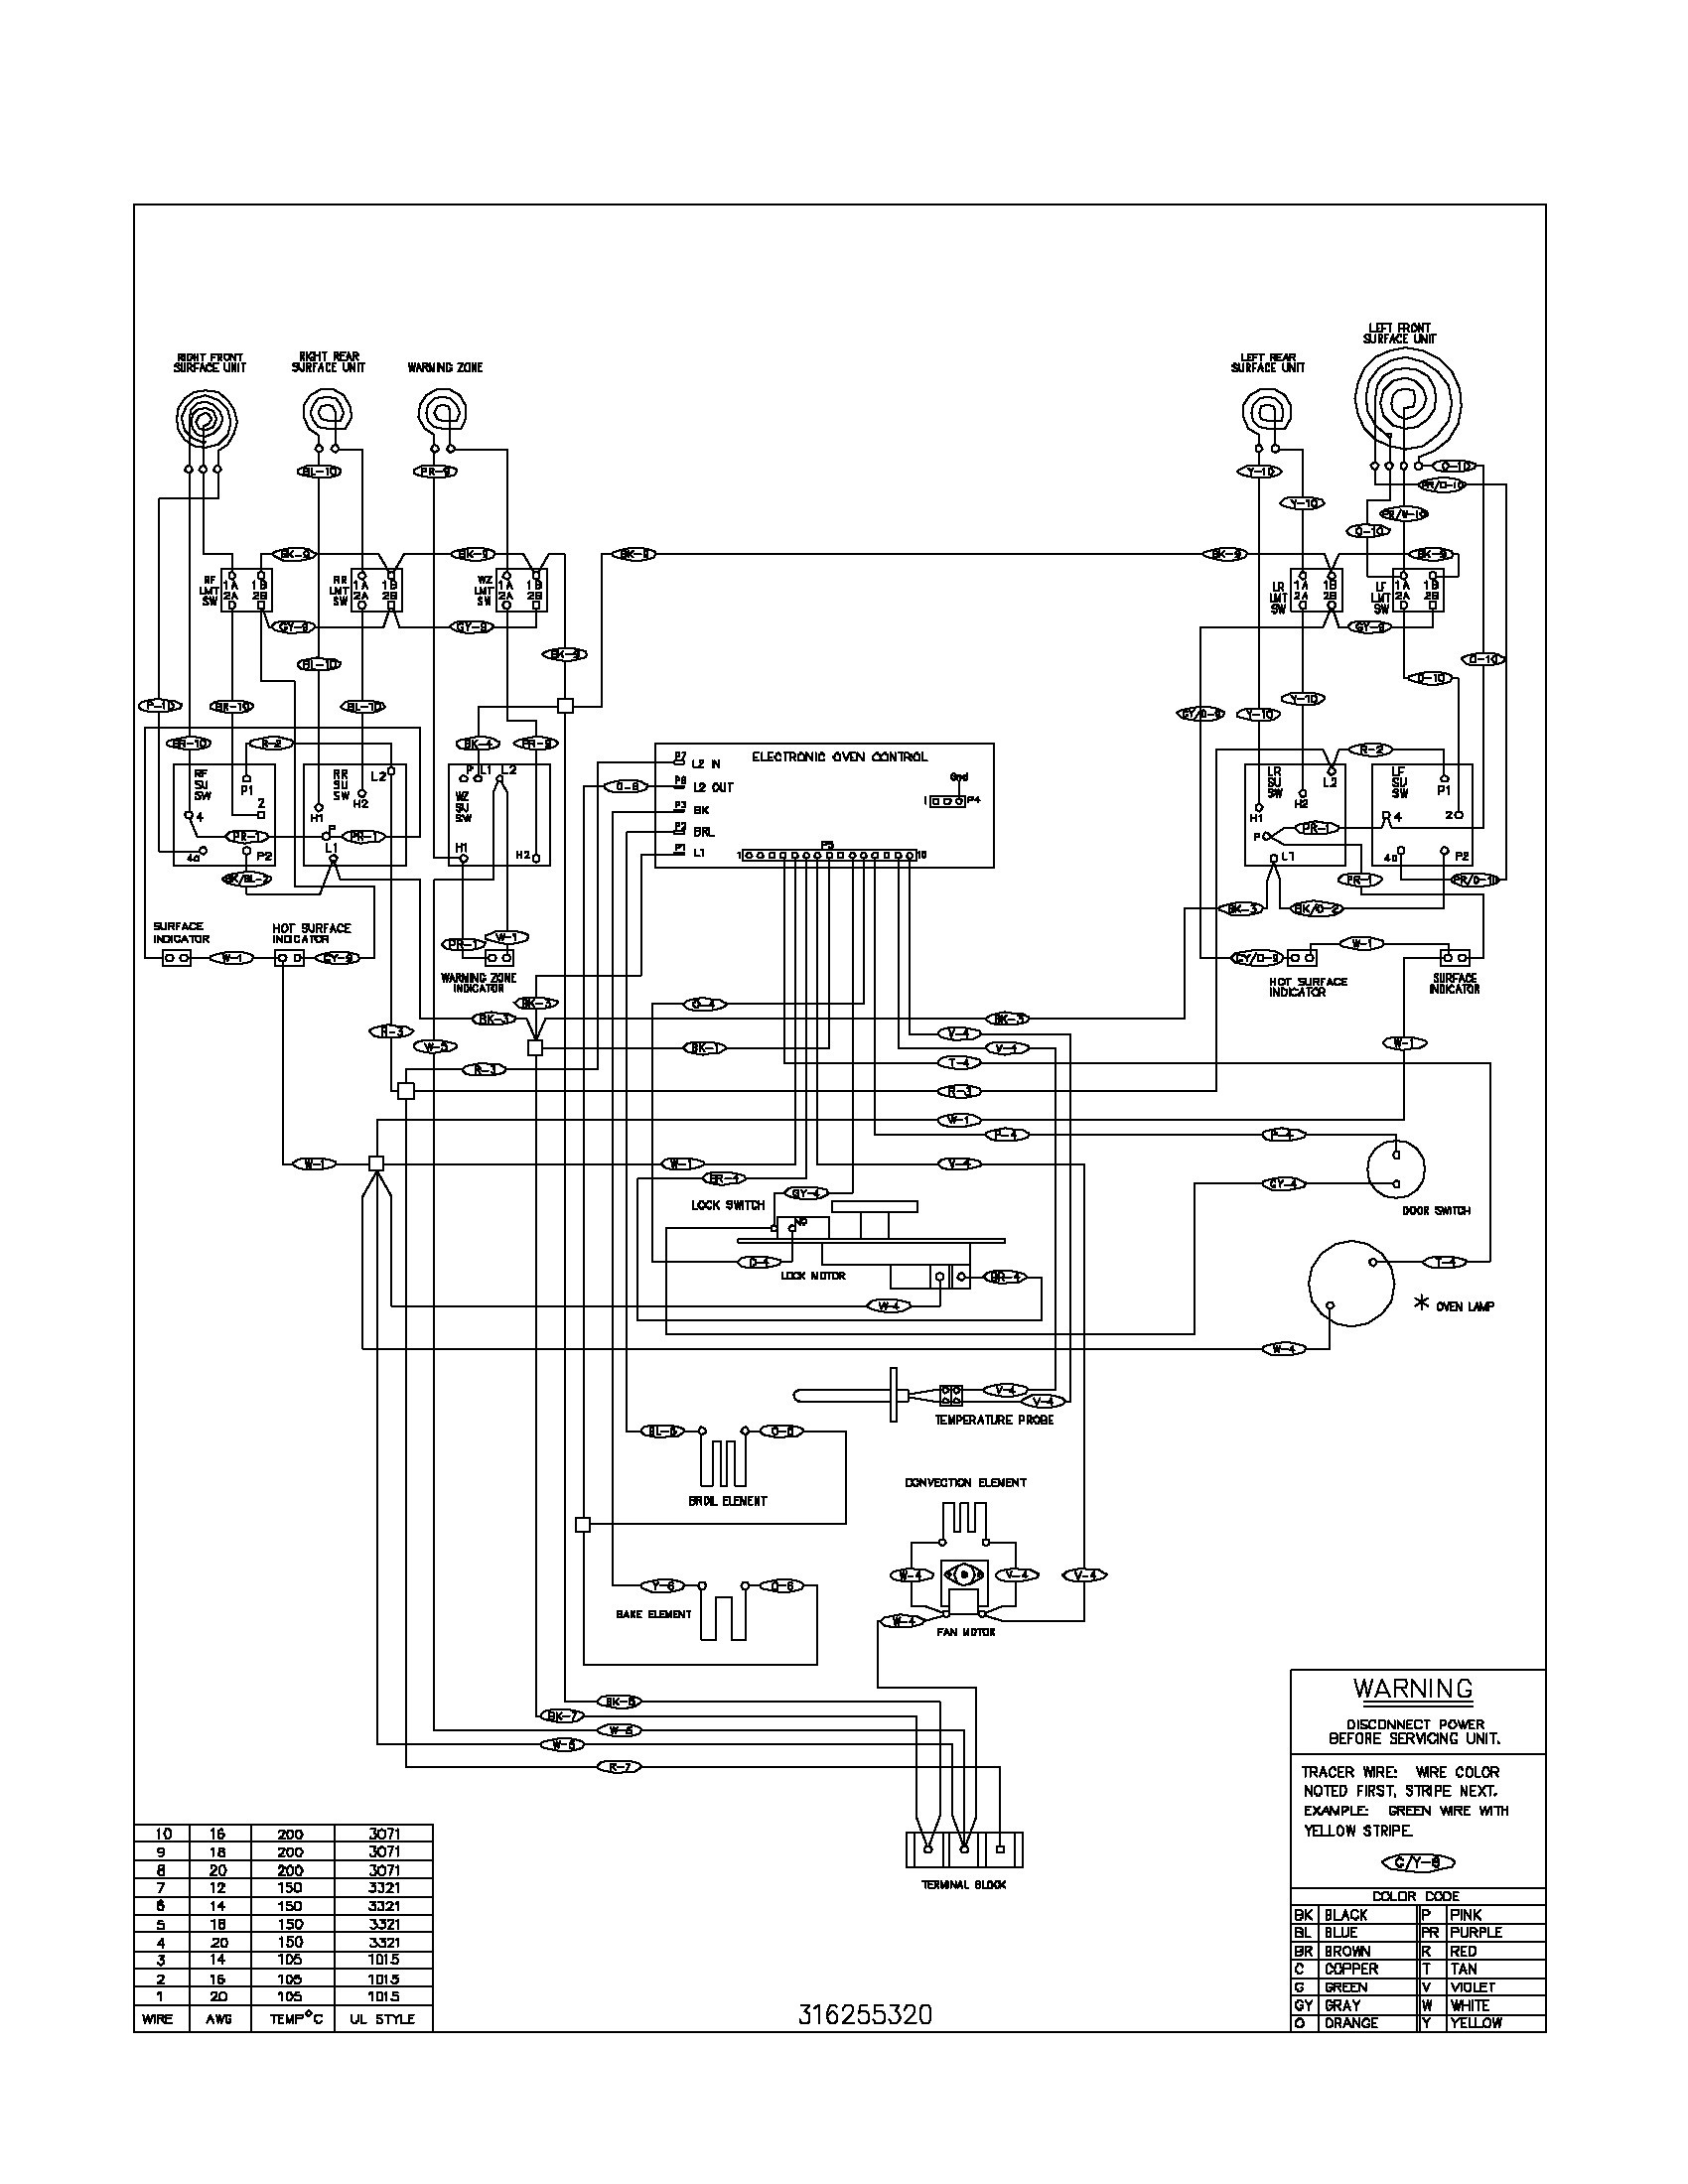 Hotpoint Dryer Wiring Schematic Roper Dryer Schematic Ge